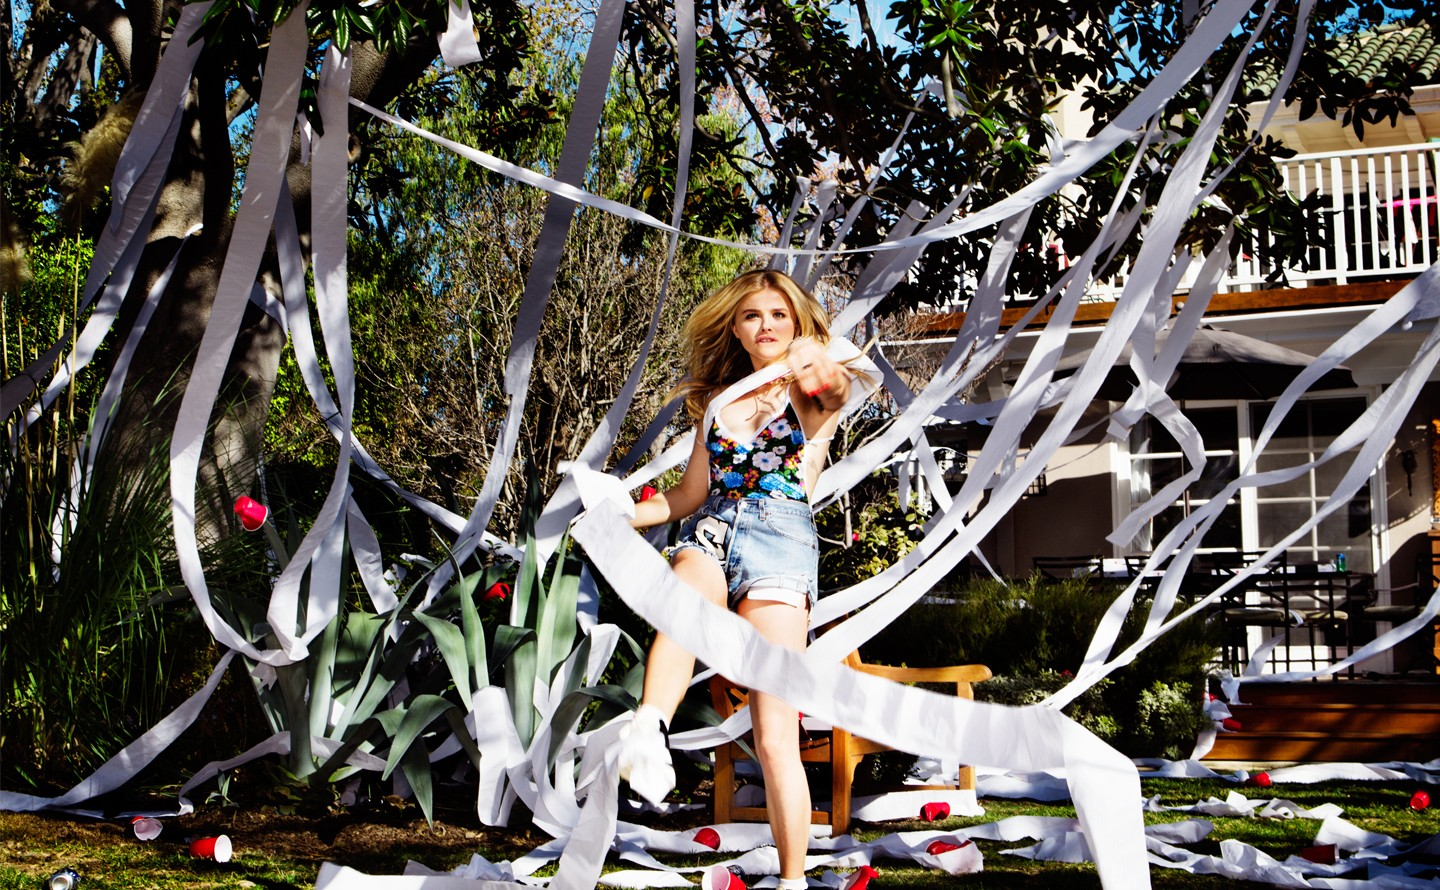 Chloë Grace Moretz Interview: Catch Me If You Can (2016 Cover Story) news